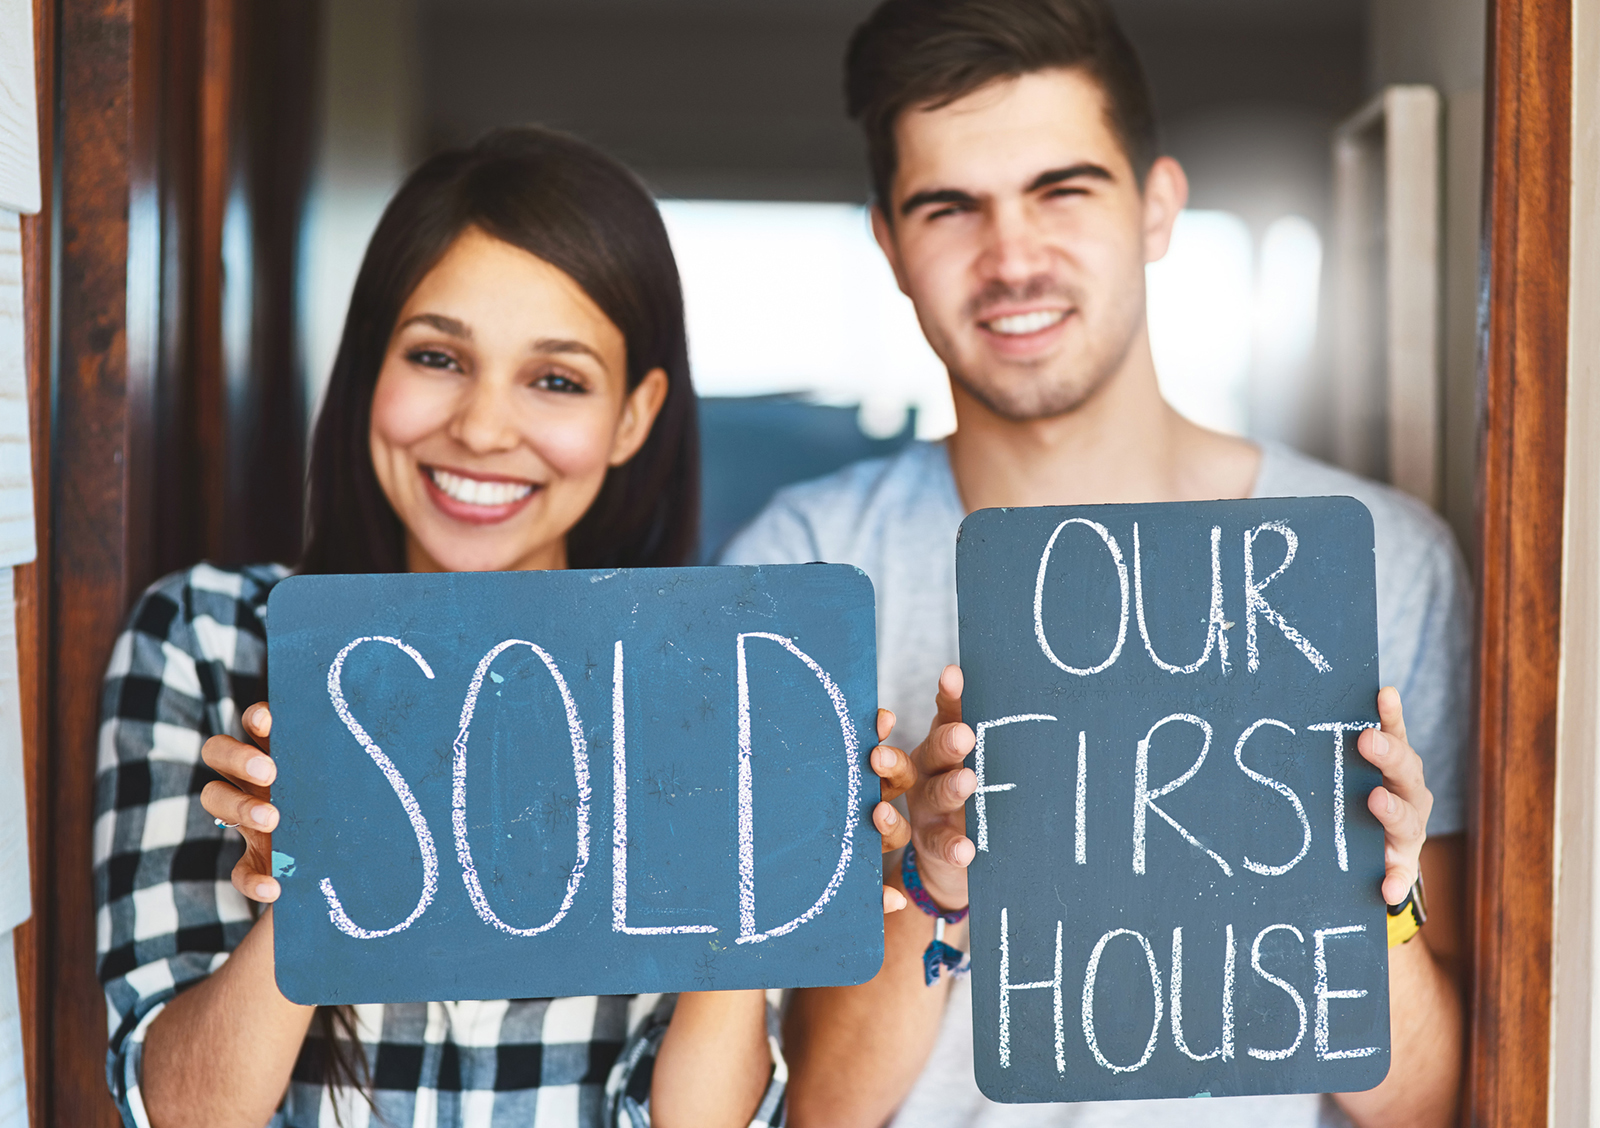 Portrait of a happy couple holding signs as they move into their new house